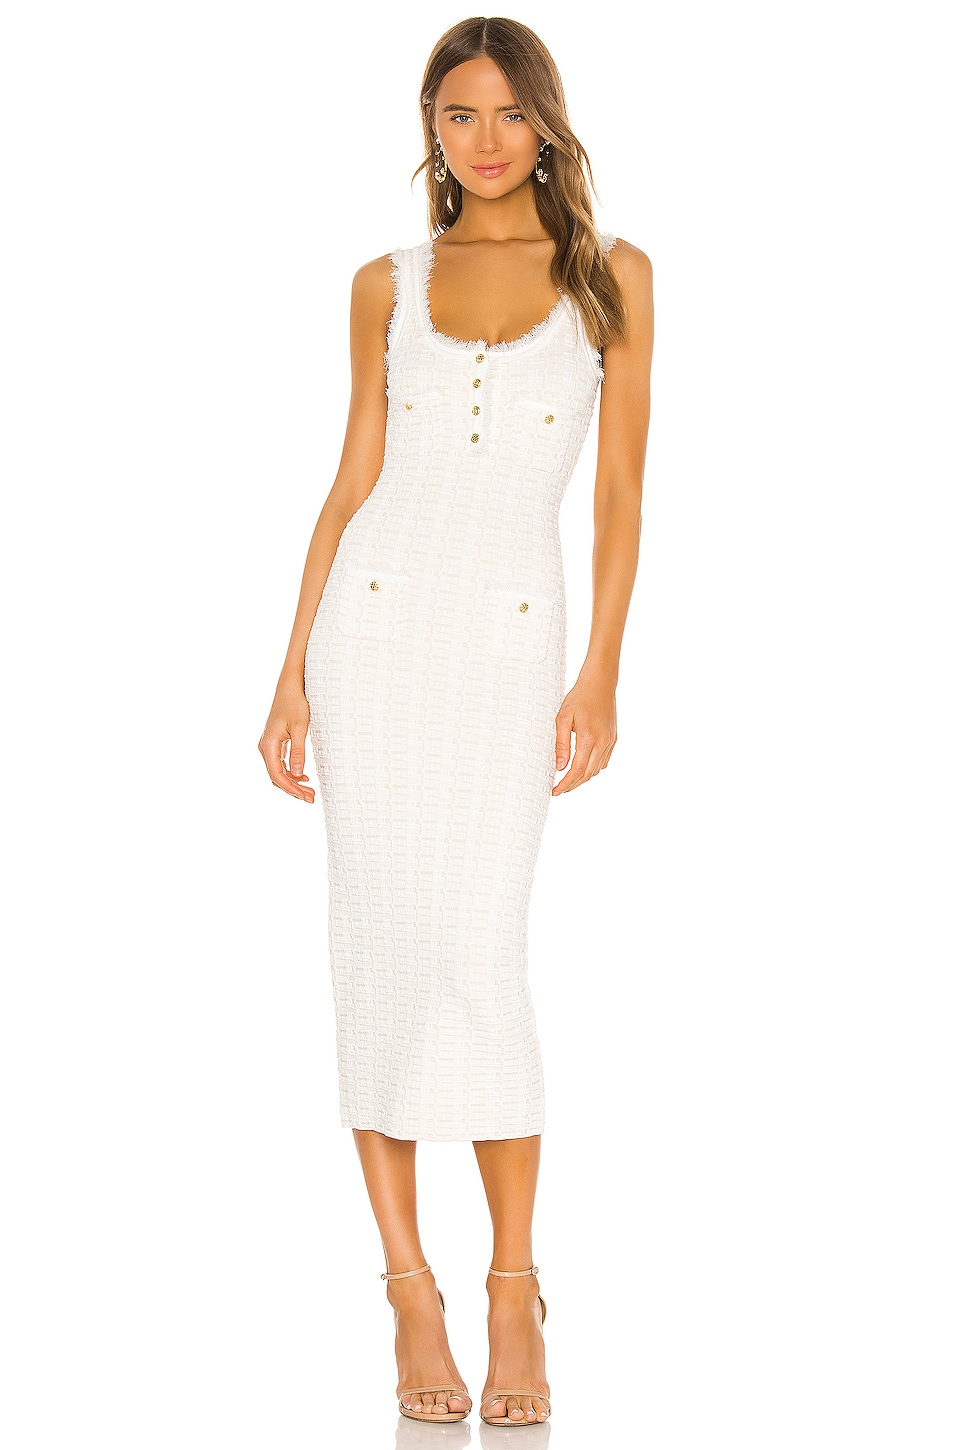 Ronny Kobo Nina Dress in White & Ecru